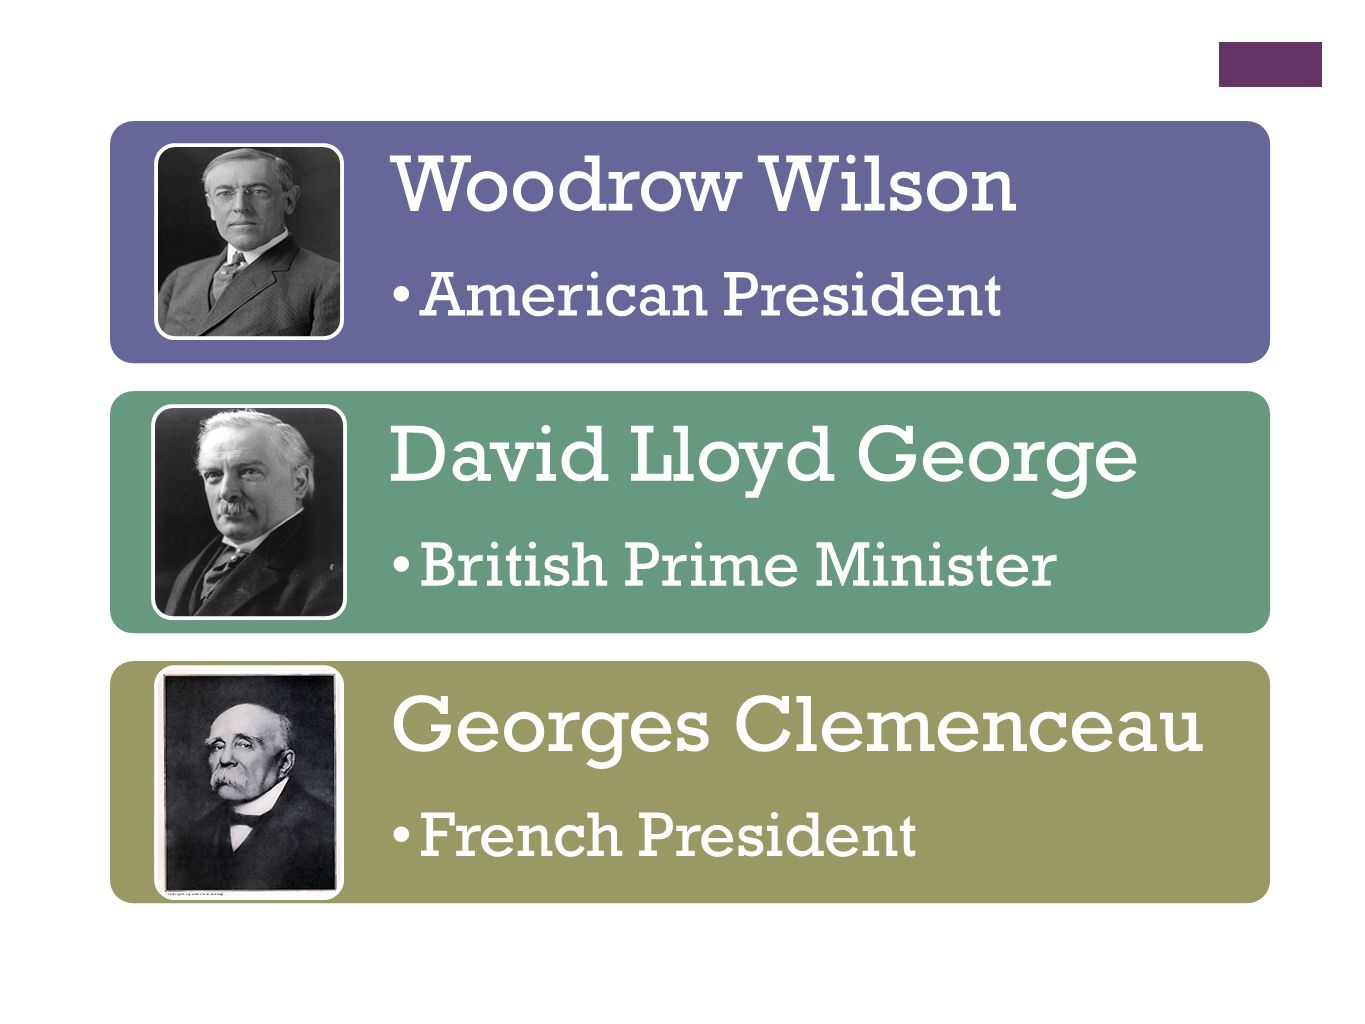 Woodrow Wilson American President David Lloyd George British Prime Minister Georges Clemenceau French President